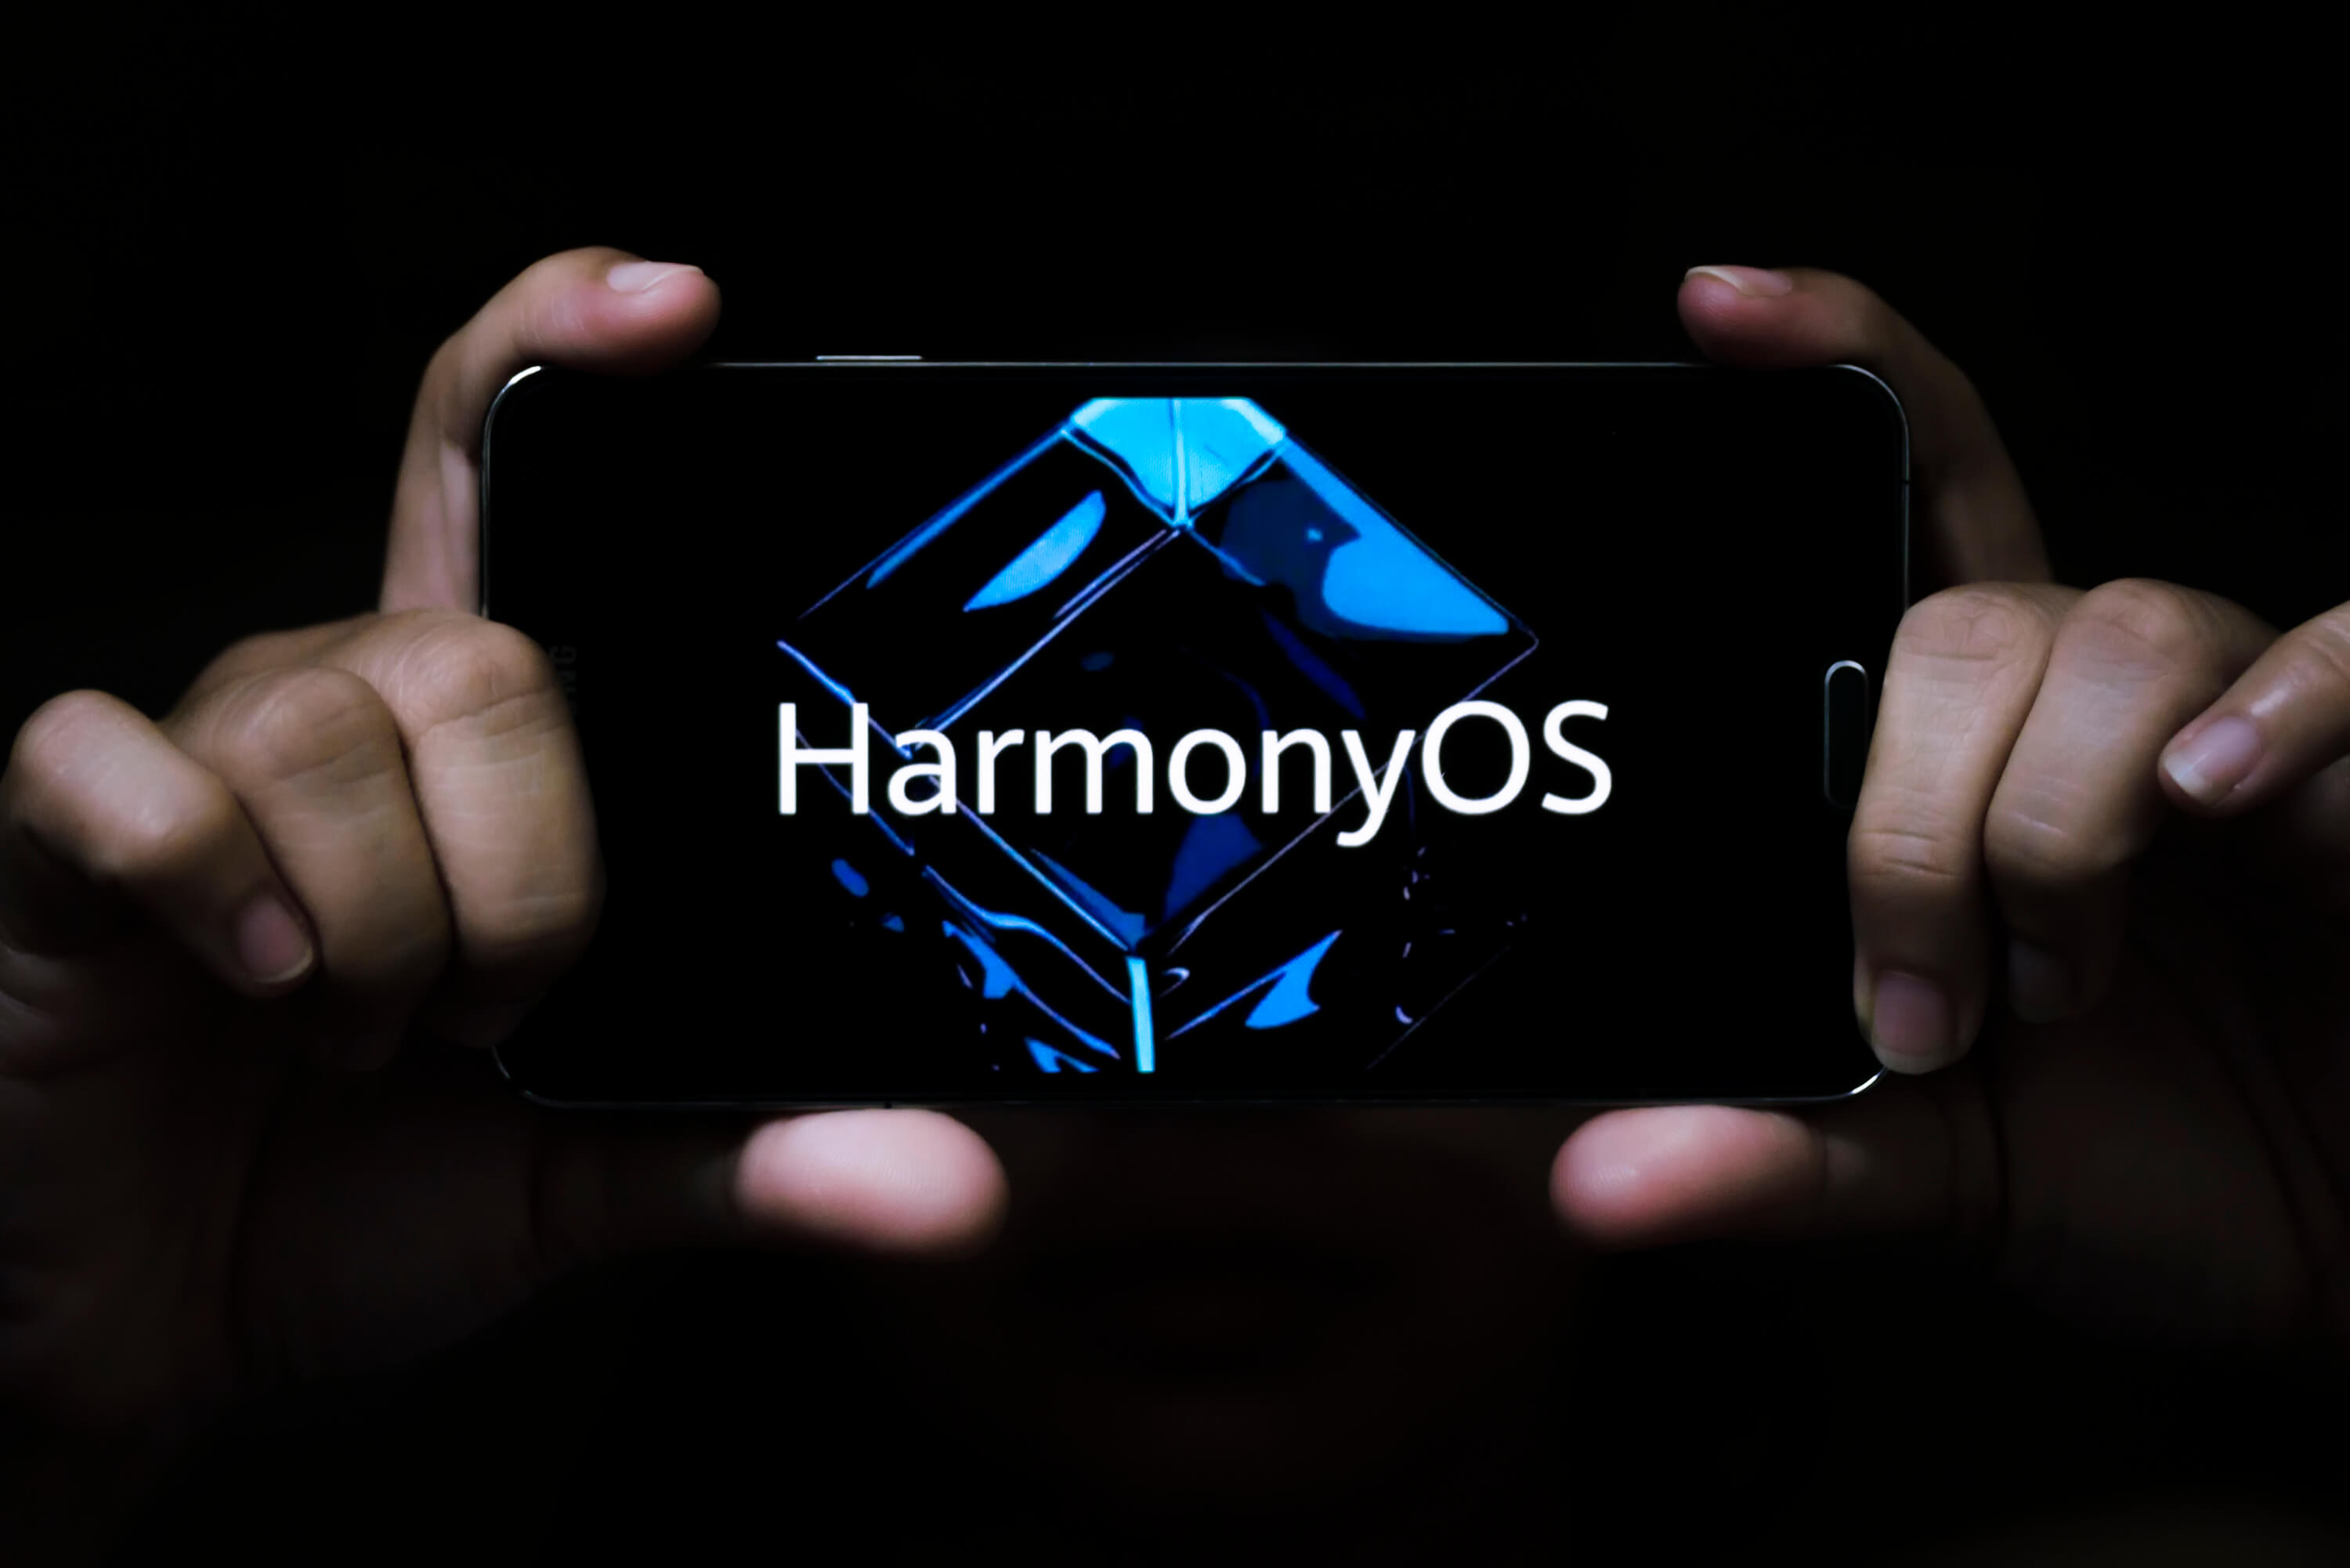 Huawei: HarmonyOS makes its debut